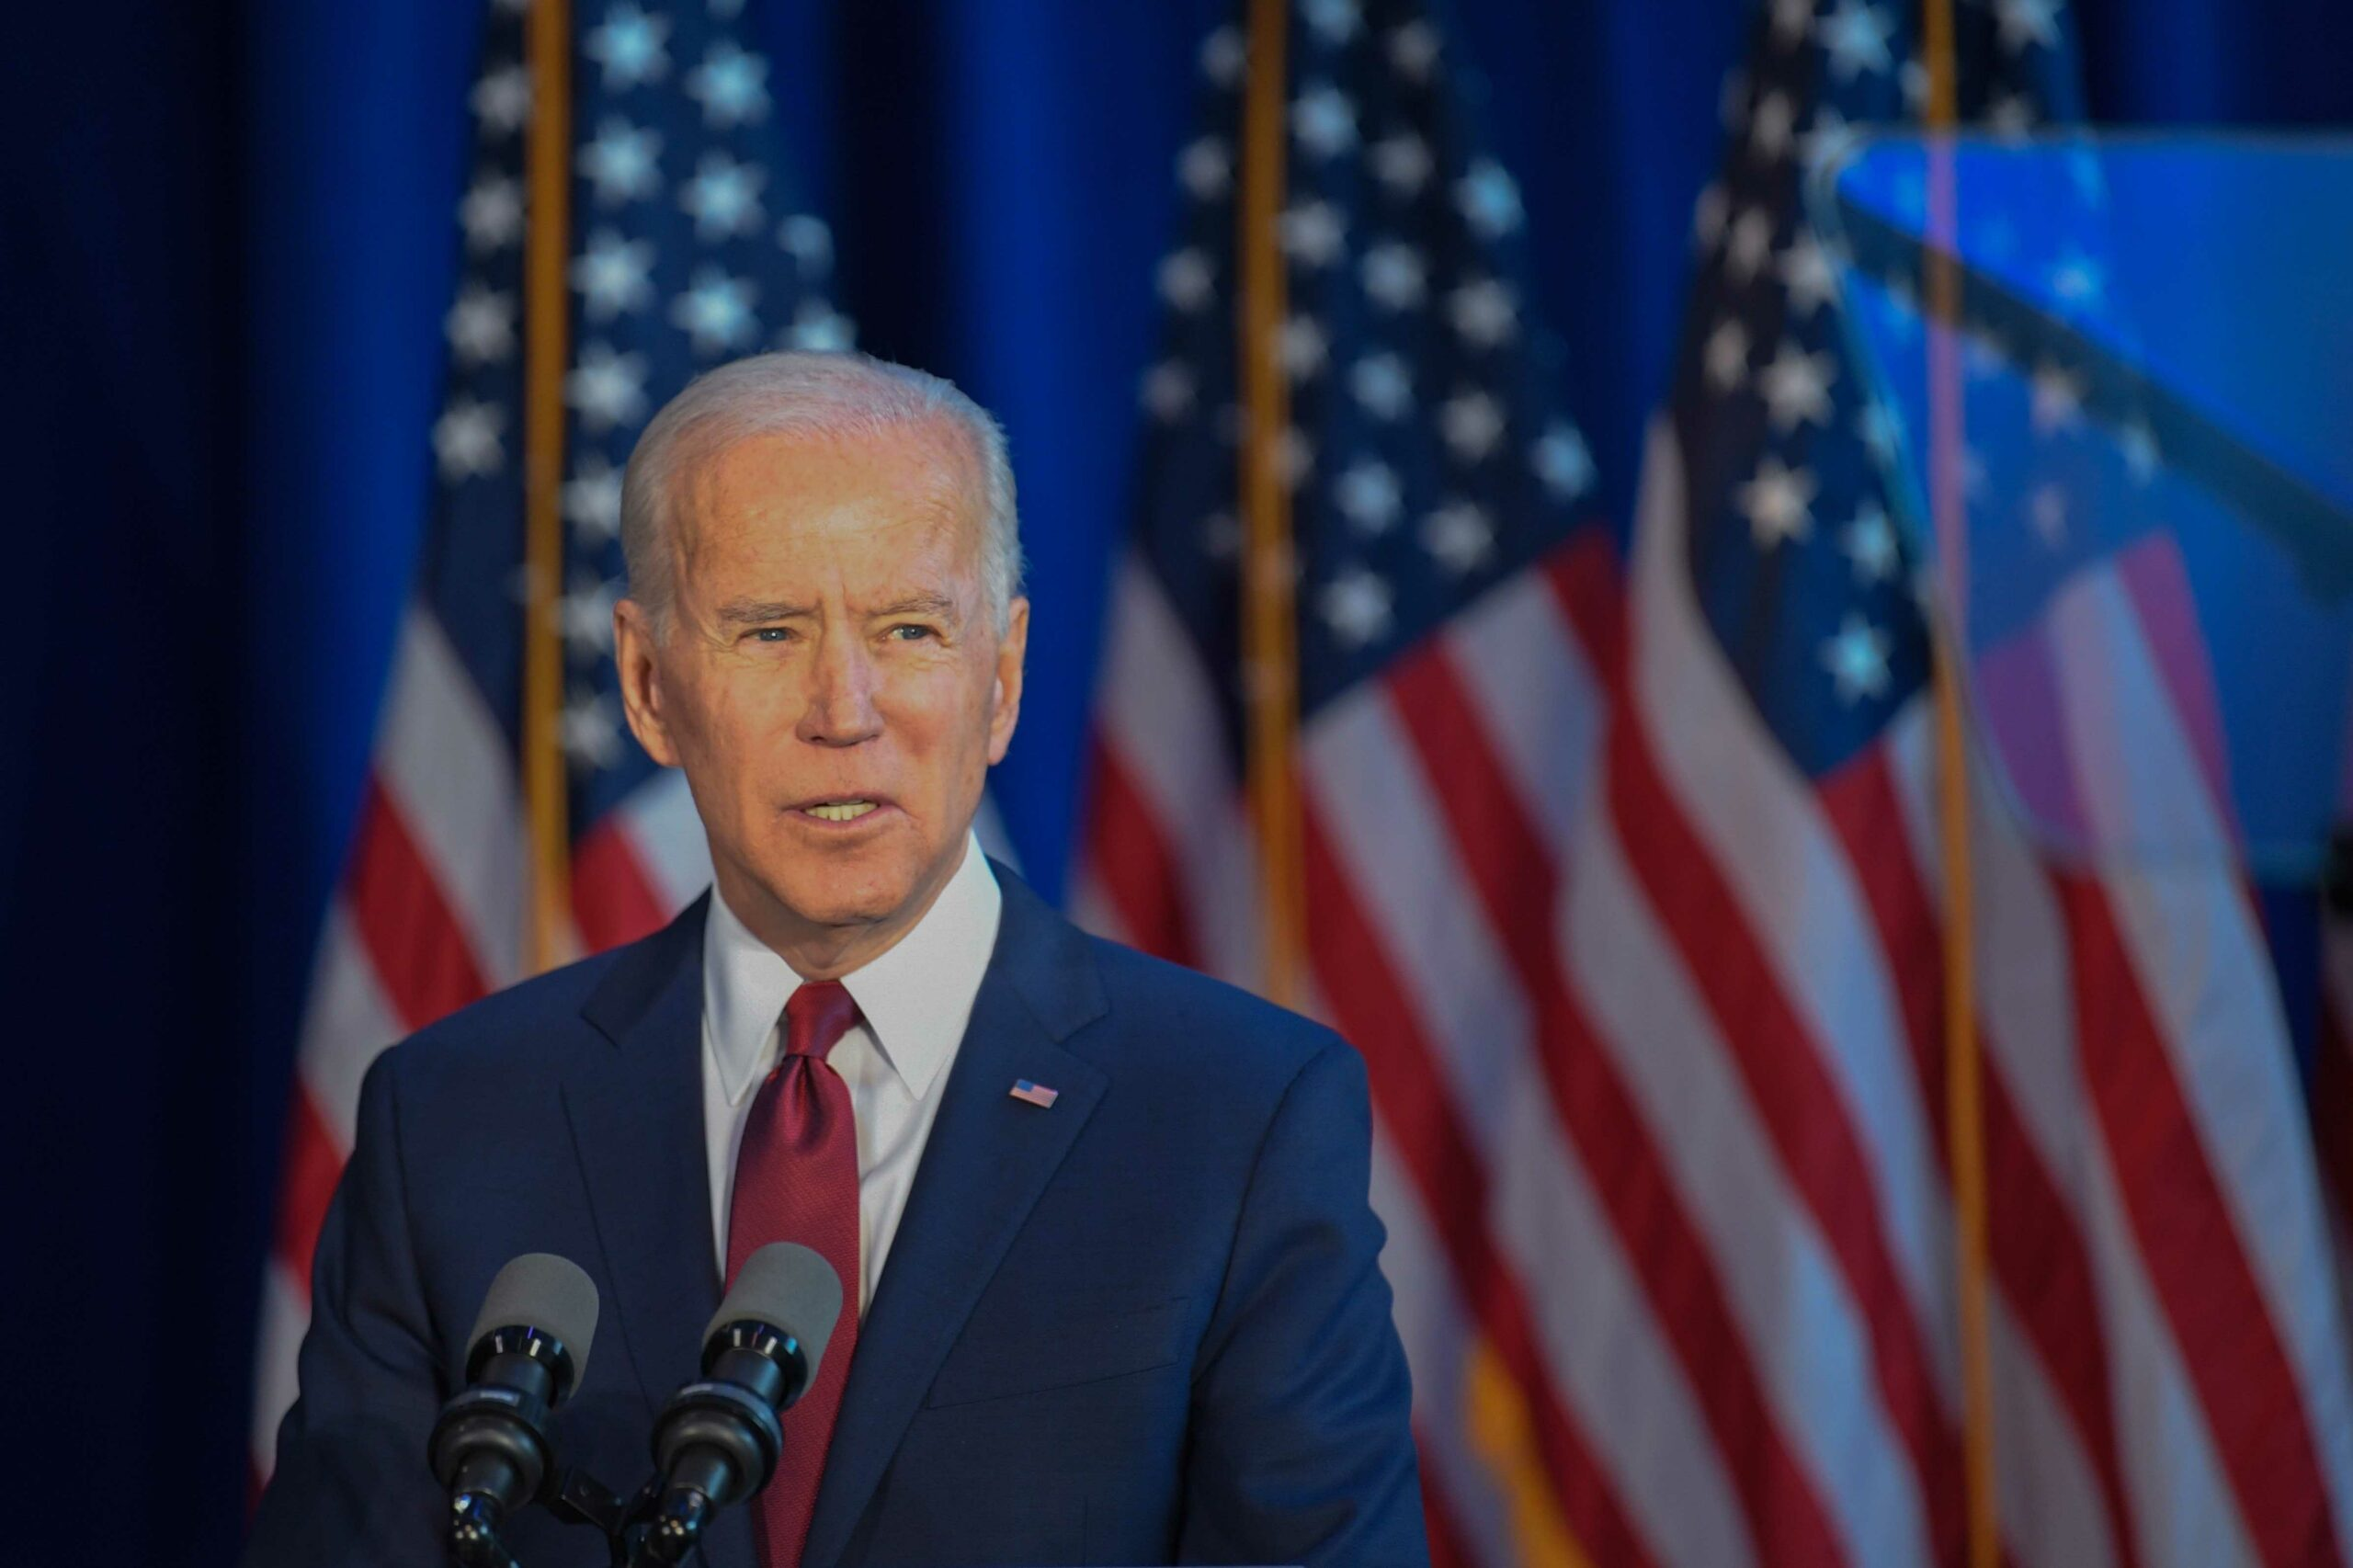 Joe Biden's new administration unlikely to fully change US-China policy of Trump 1